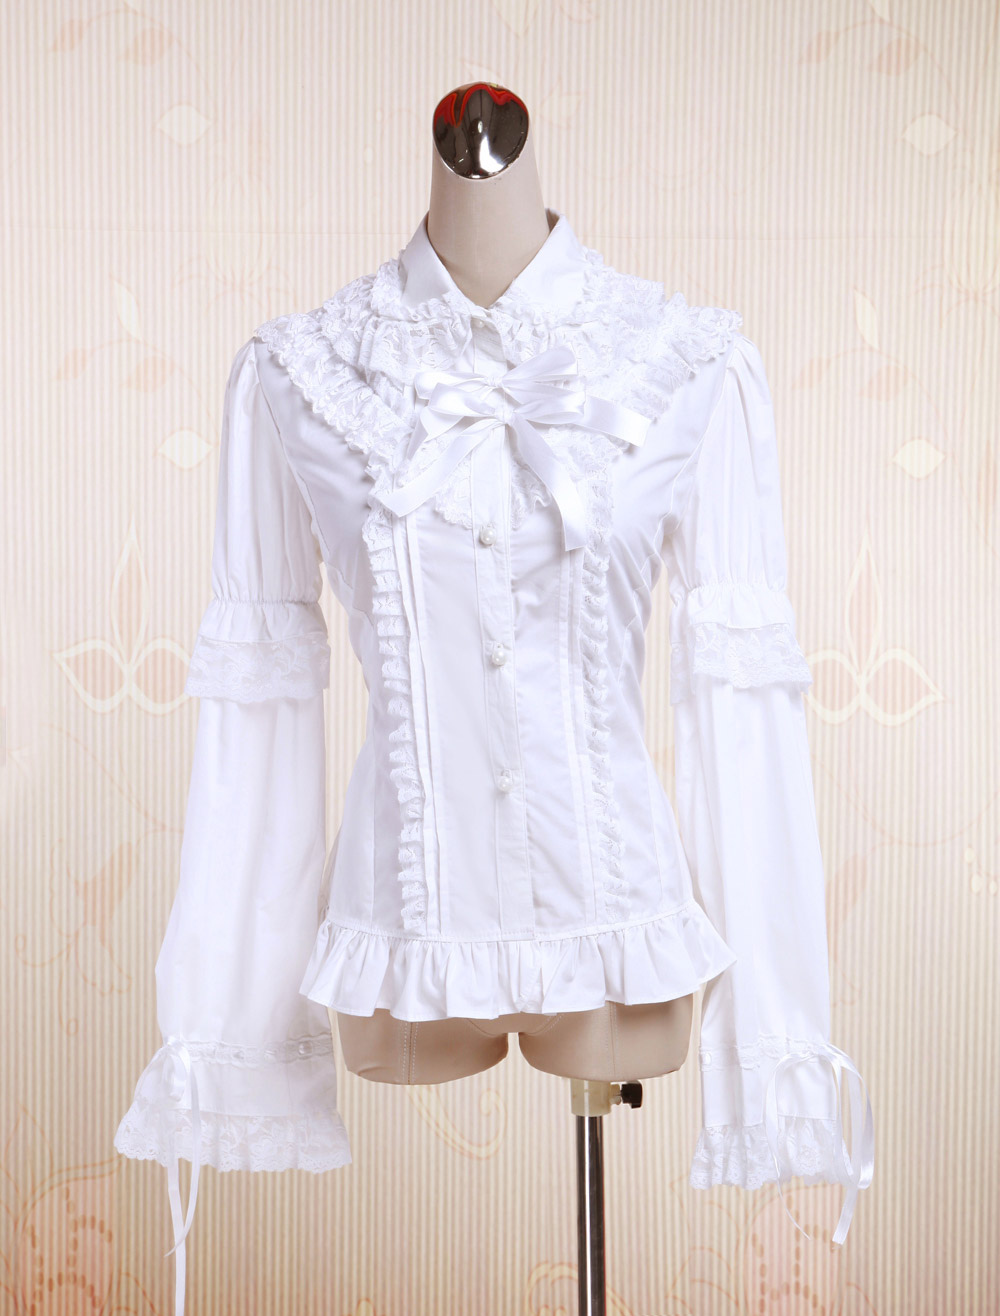 Buy Pure White Cotton Lolita Blouse Long Sleeves Lace Trim Lace Bows for $41.39 in Milanoo store